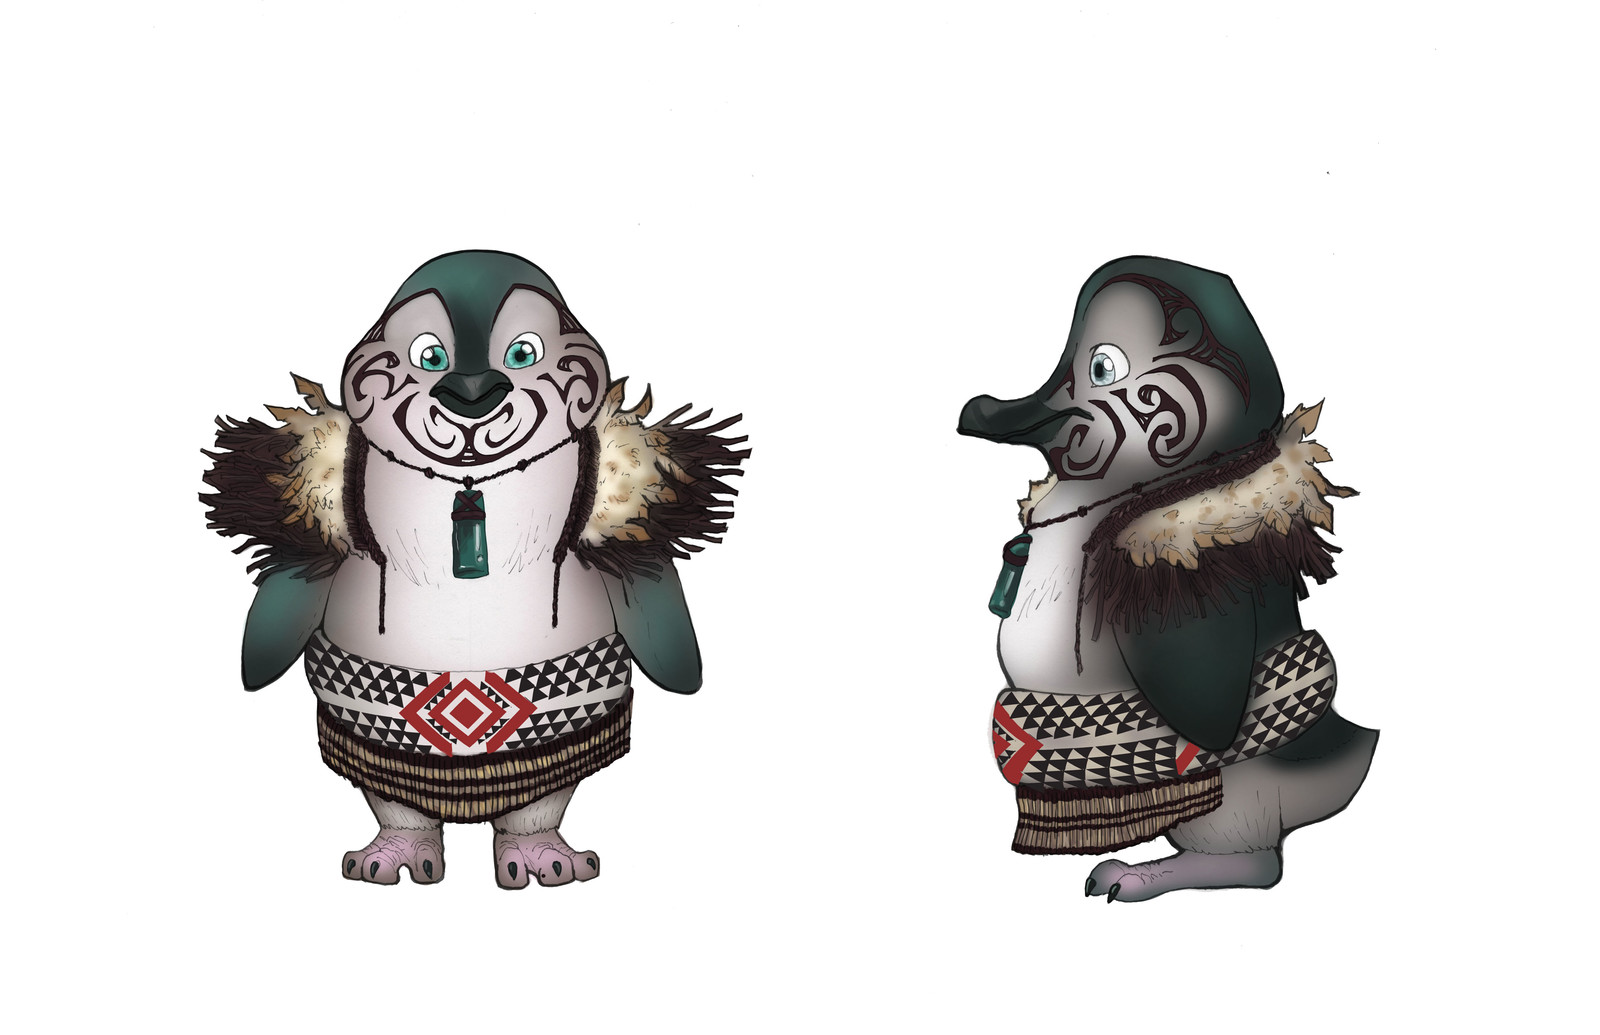 Male Blue Penguin, inspired by the Maori tribes in New Zealand.